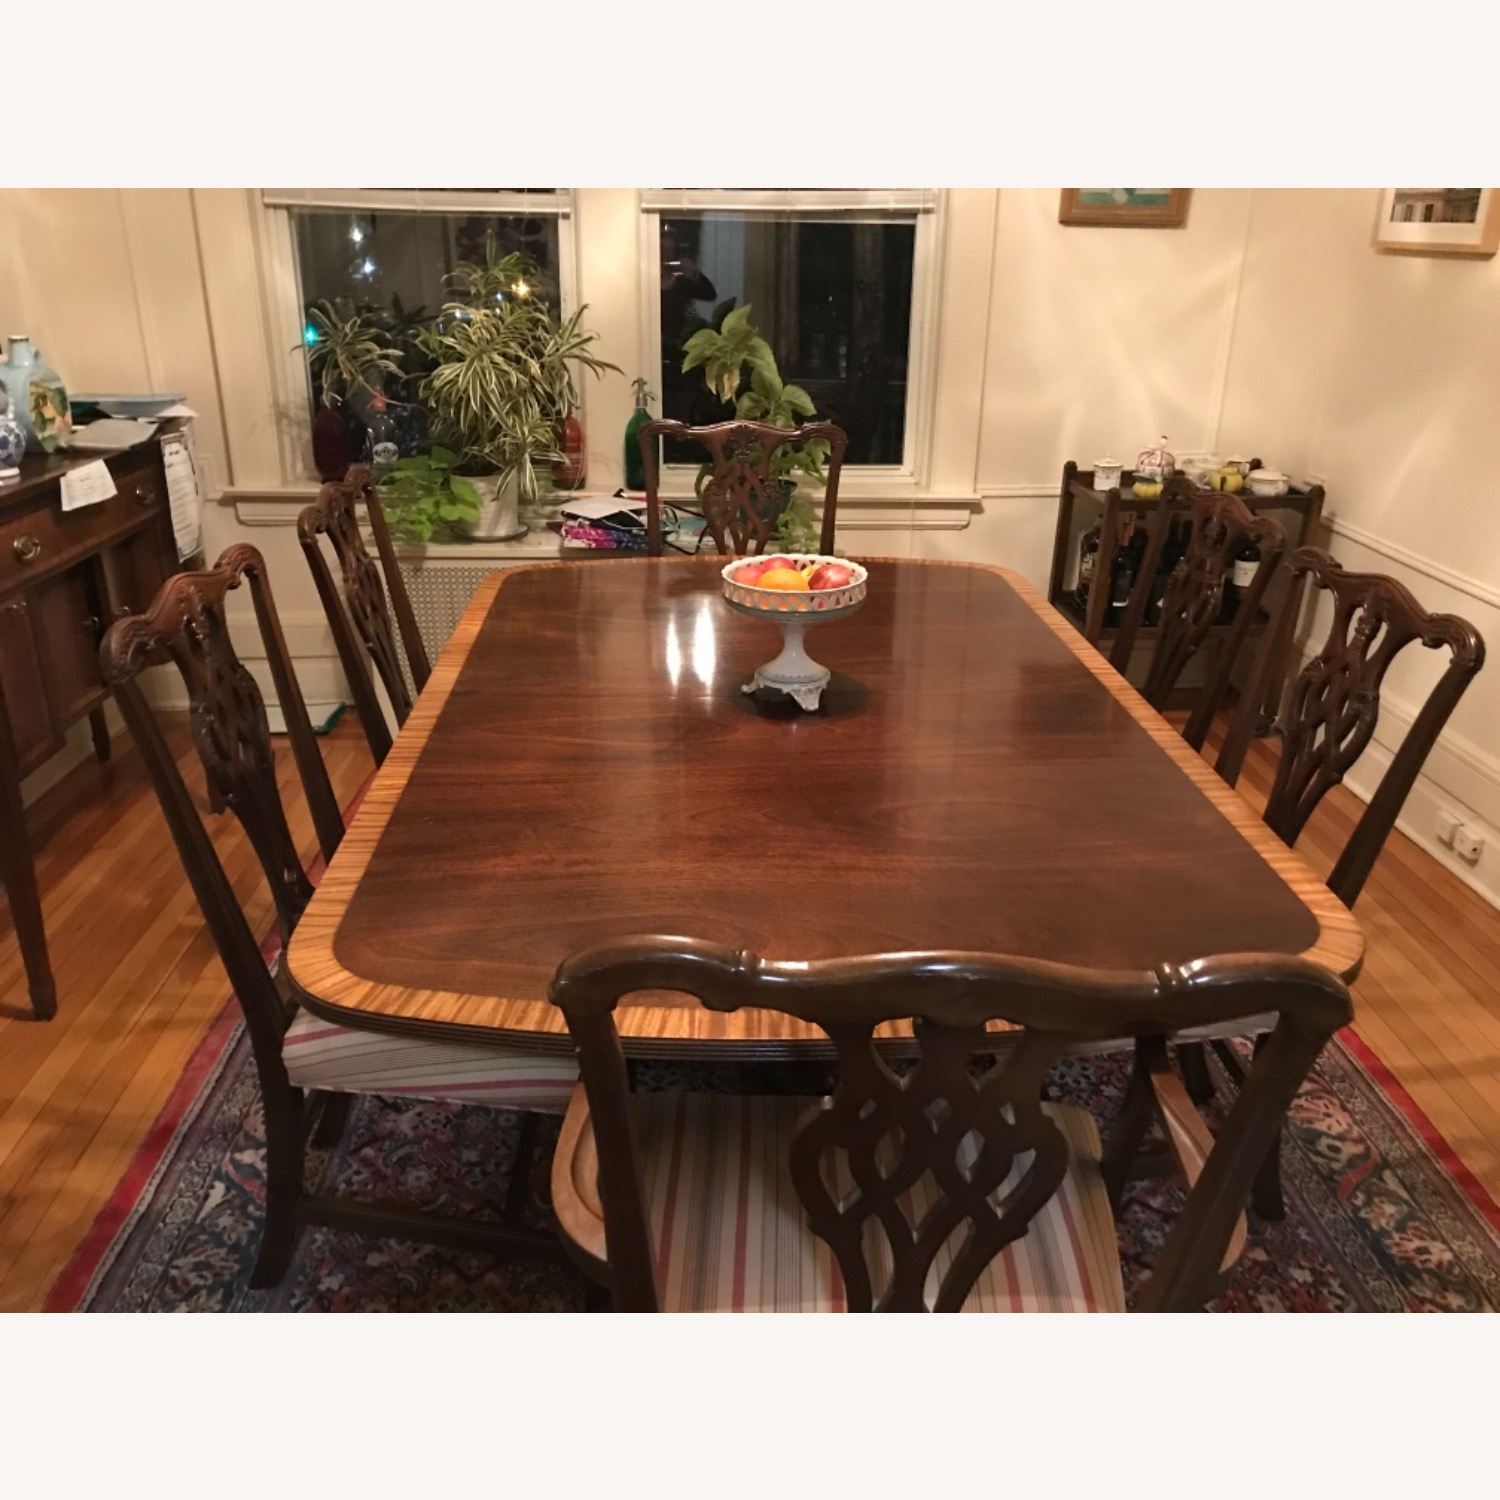 Mahogany Dining Set with 2 Leaves and 6 Chairs - image-3